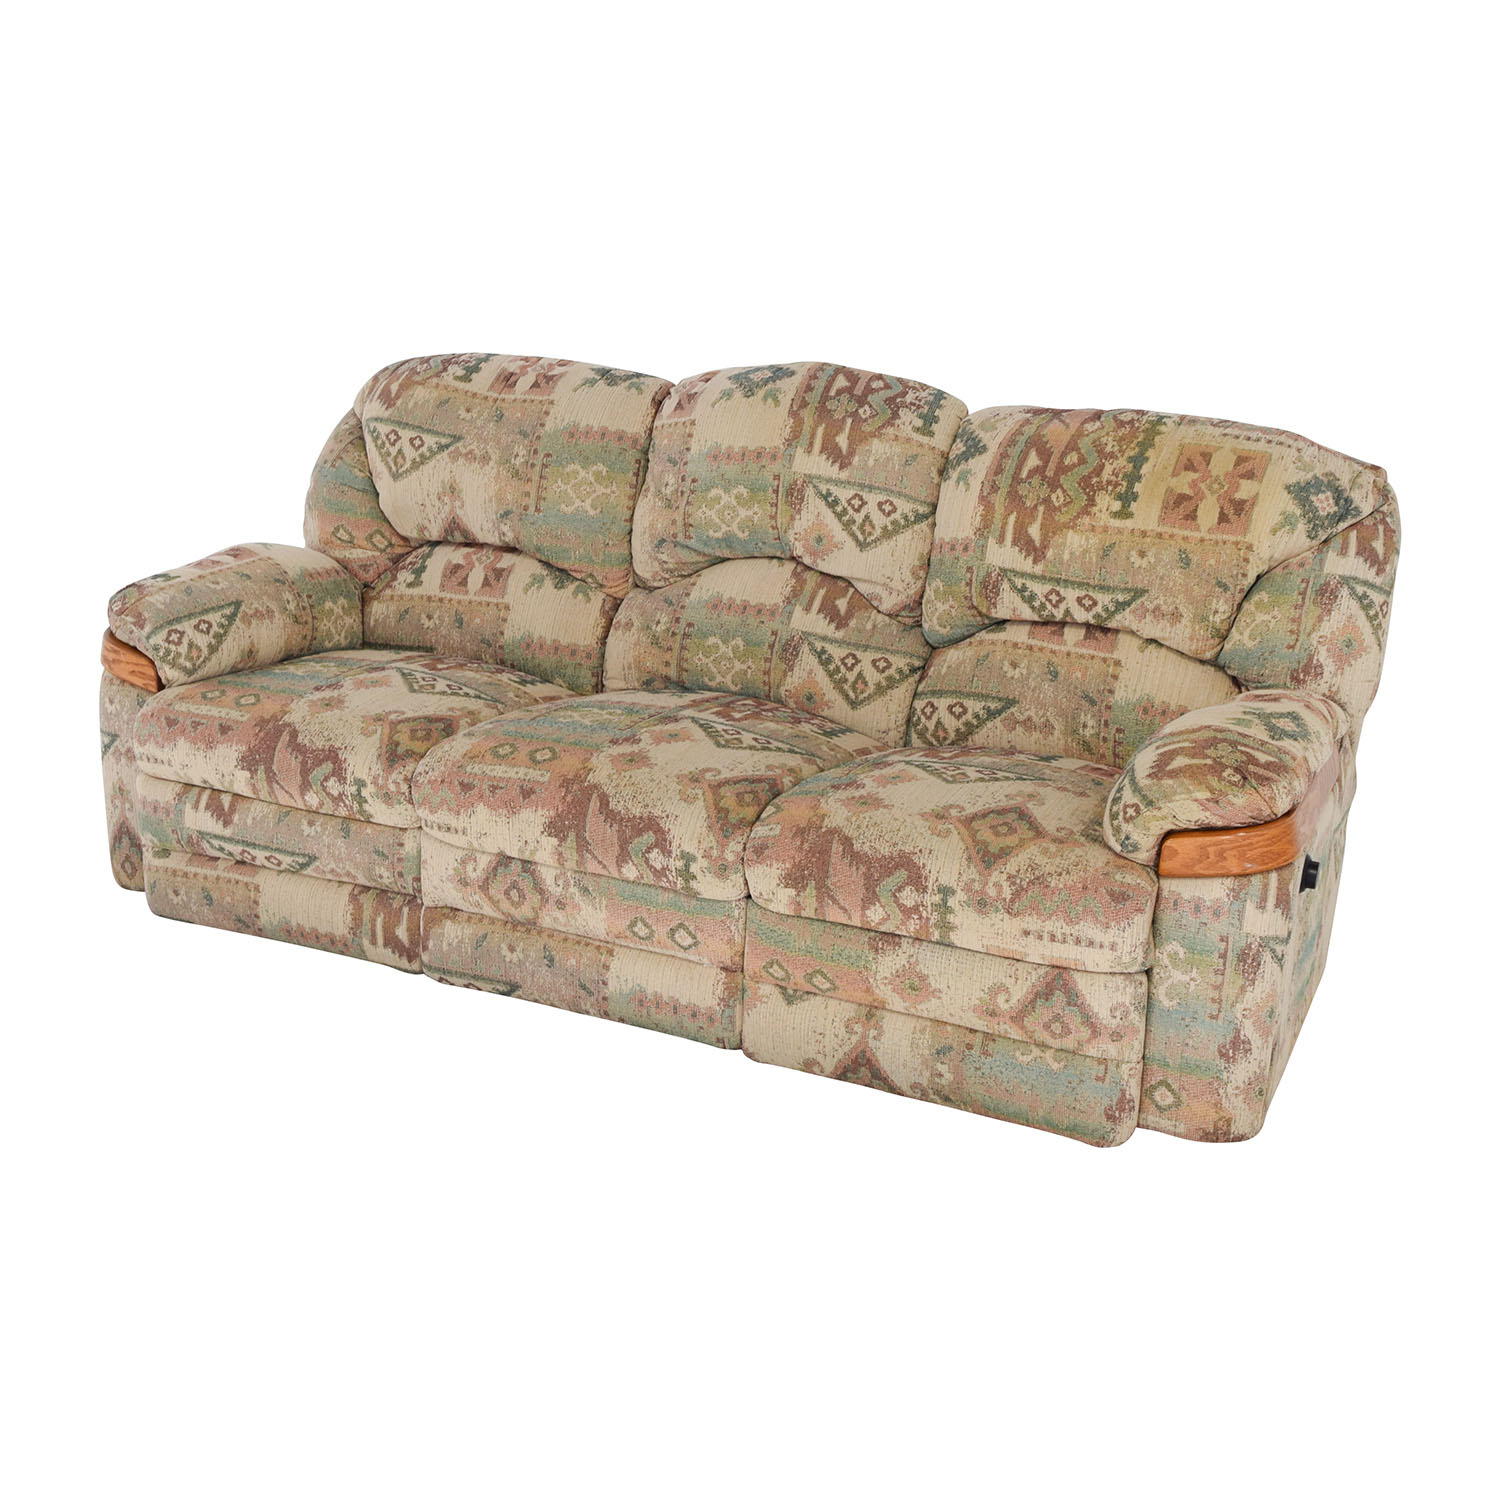 Patterned Fabric Recliner Sofa coupon